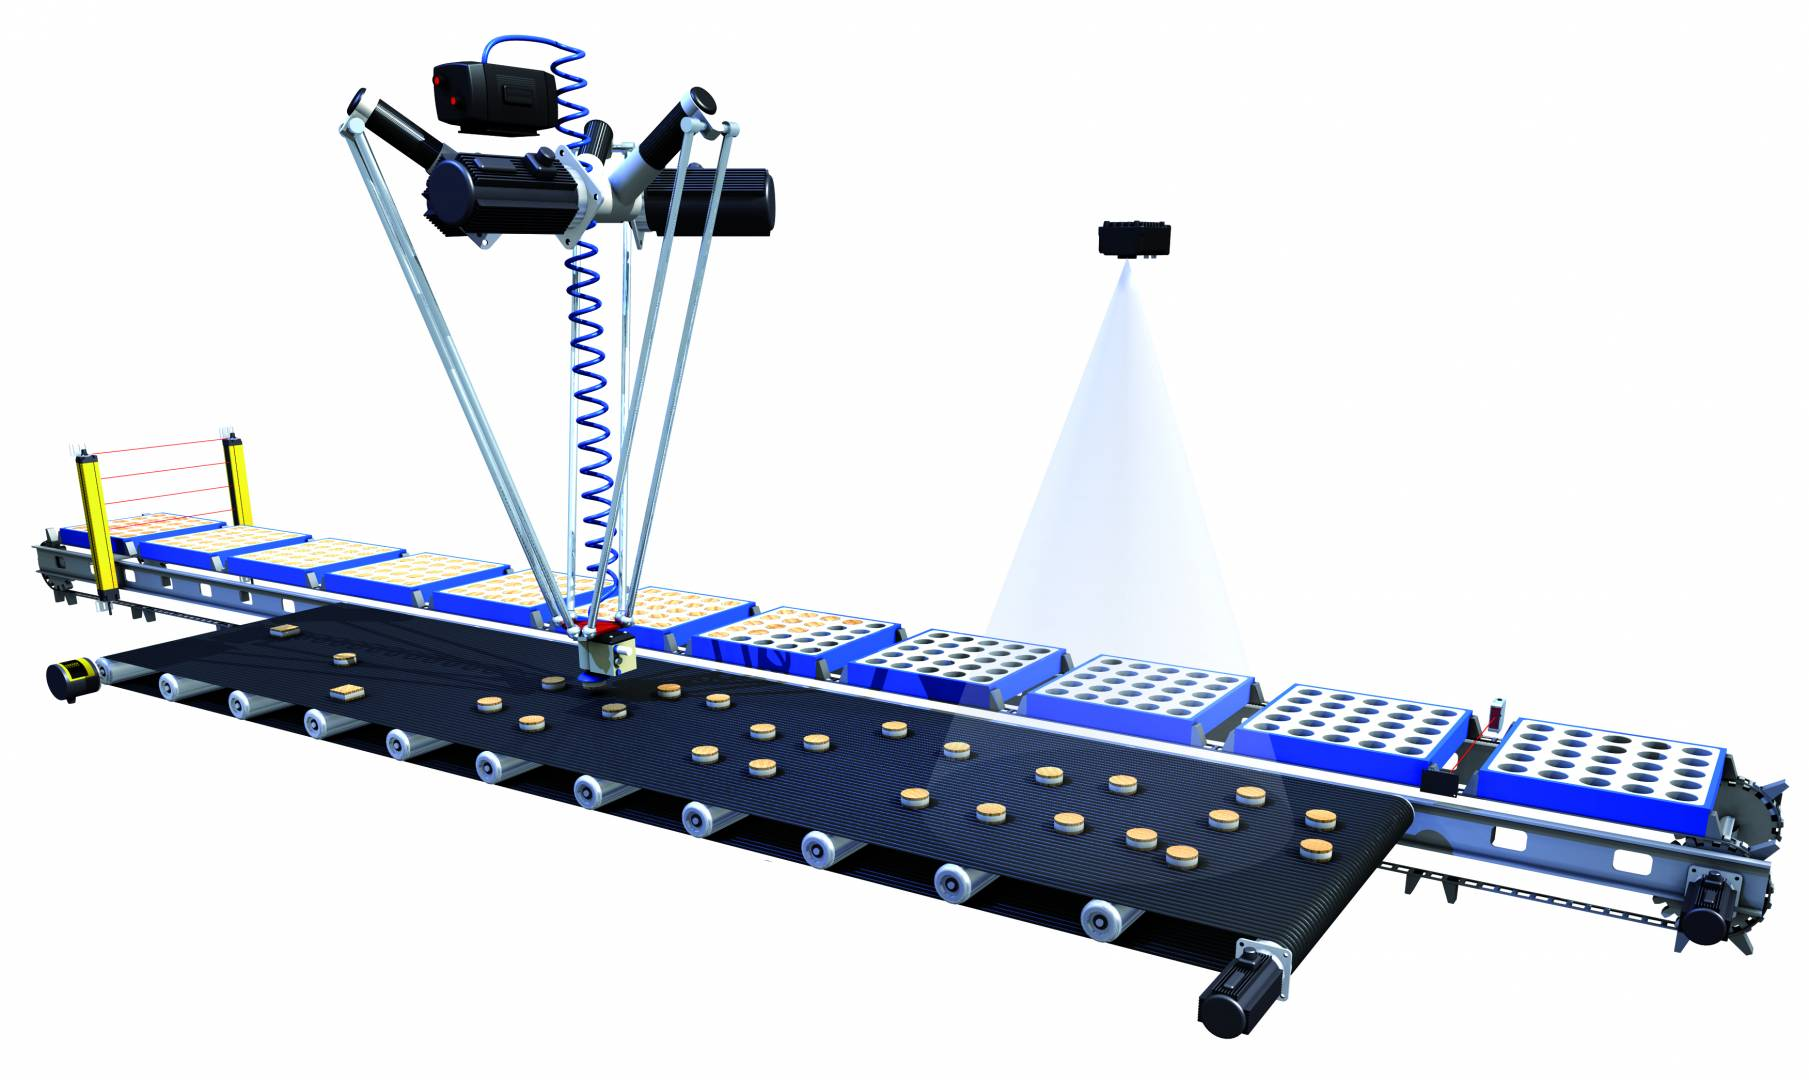 Robotic systems – just another component in the mix of automation solutions